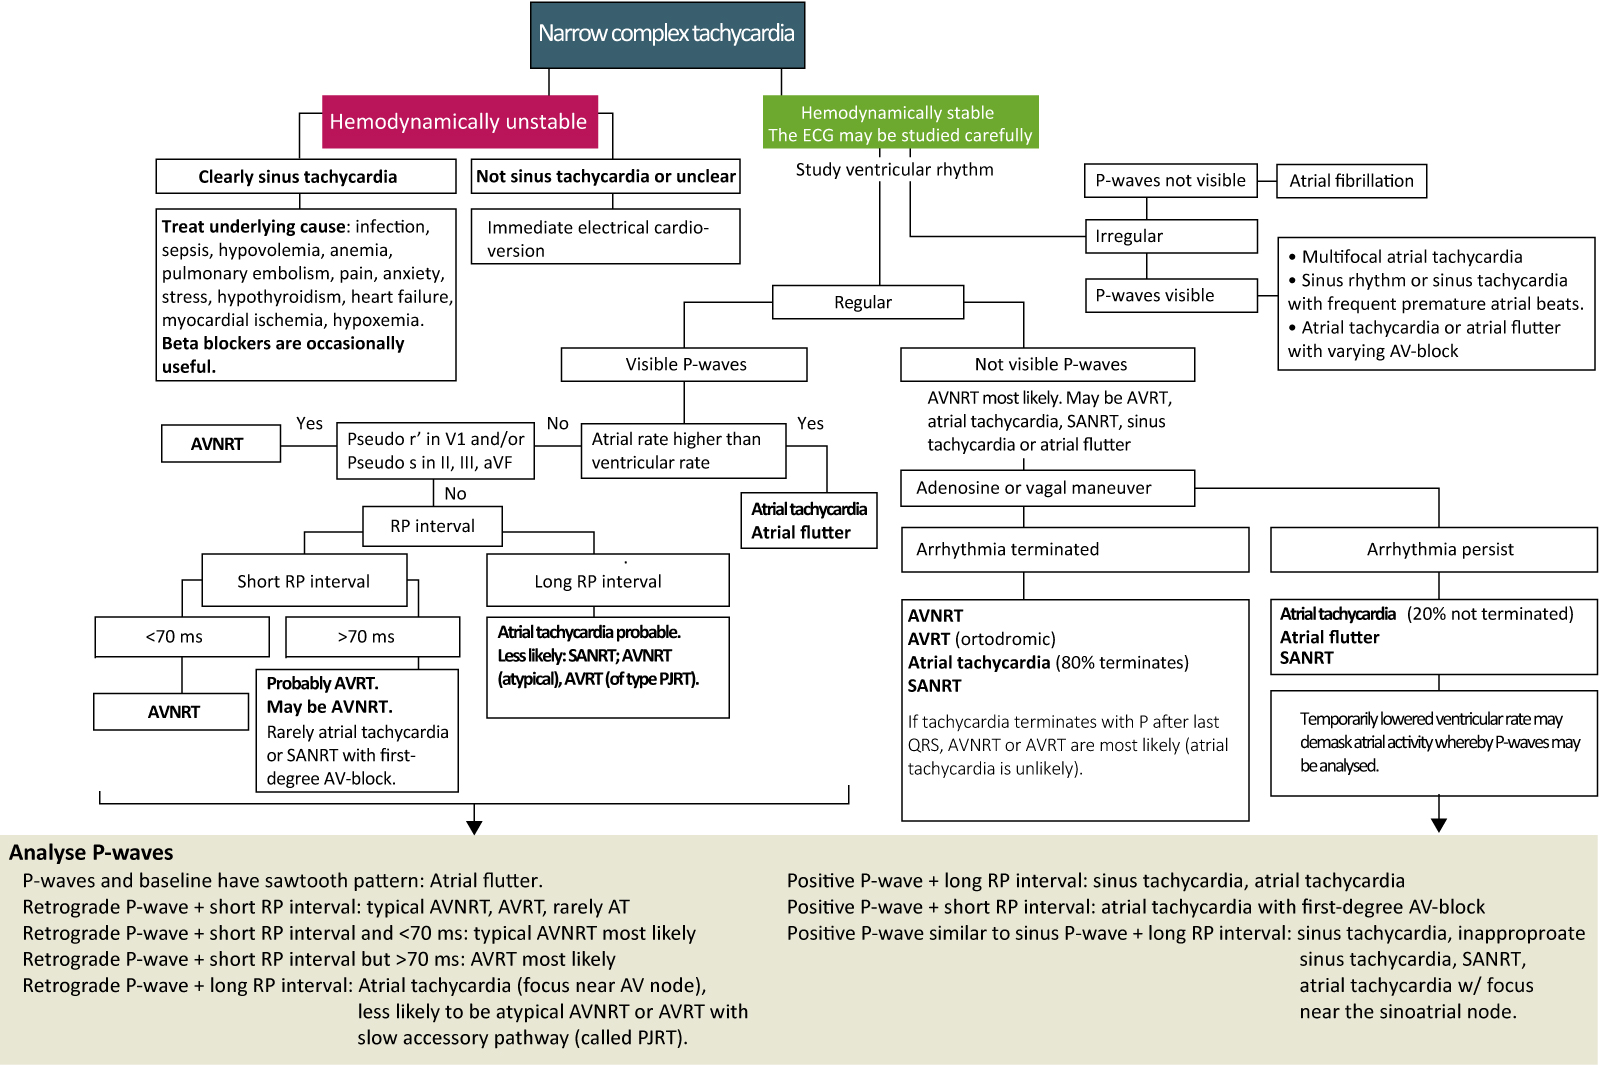 Figure 4. Management and diagnosis of narrow complex tachycardia.